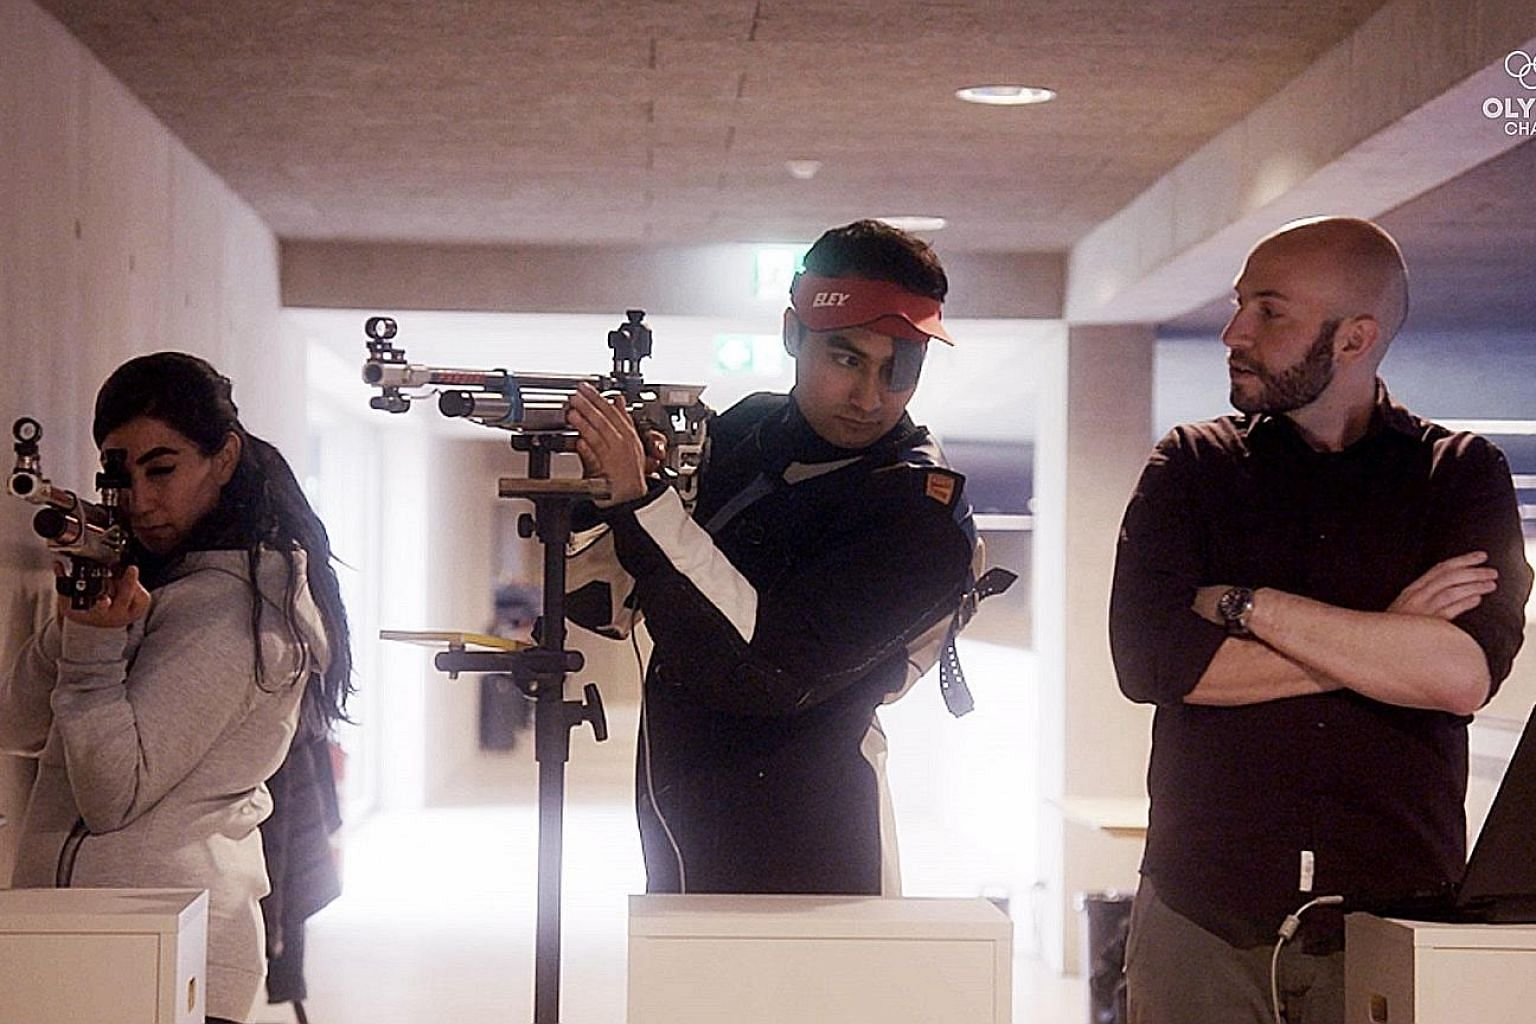 Three-time Olympic shooting gold medallist Niccolo Campriani of Italy (right) training refugees Khaoula (far left) and Mahdi at the World Archery Excellence Centre in Lausanne.